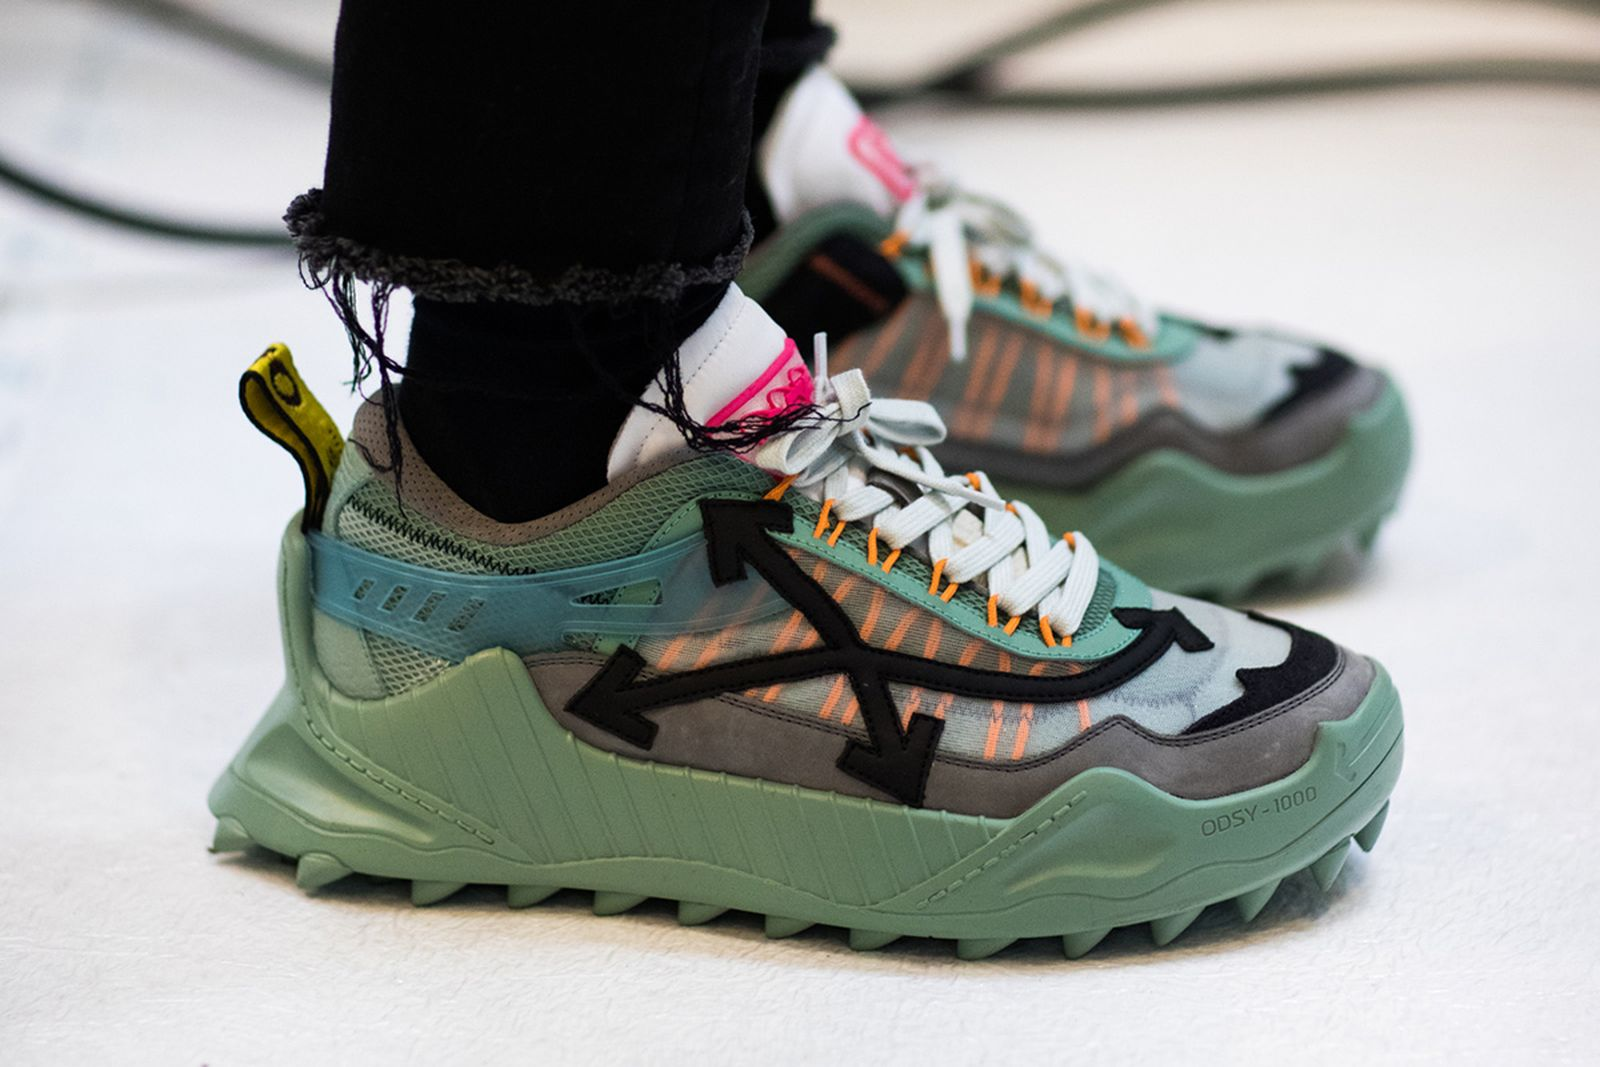 off white odsy 1000 release date price OFF-WHITE ODSY-1000 OFF-WHITE c/o Virgil Abloh